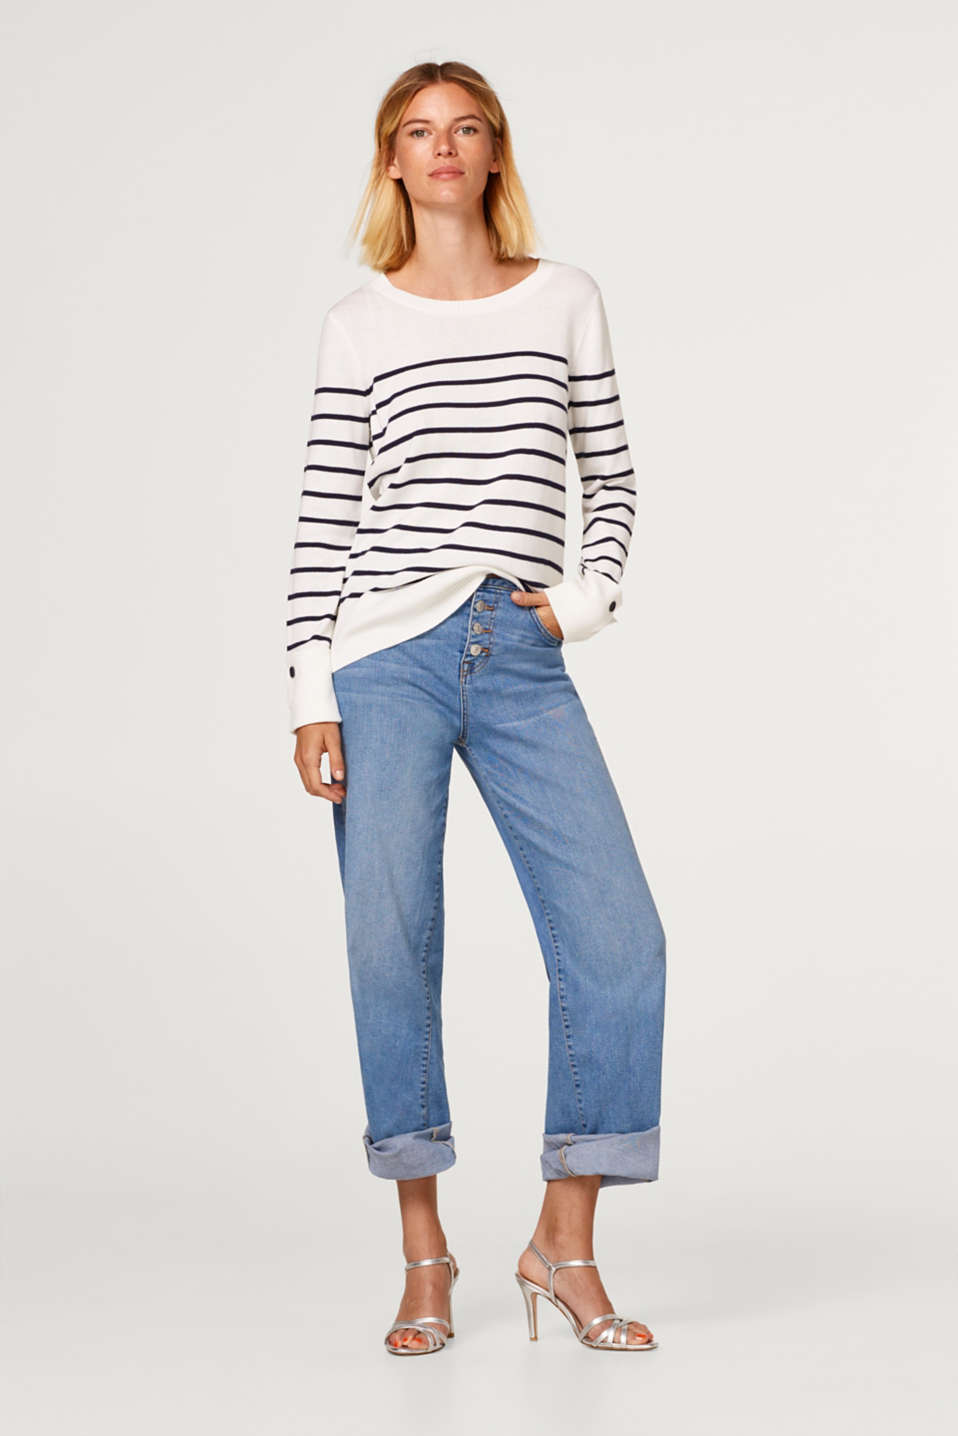 Striped jumper with turn-up cuffs